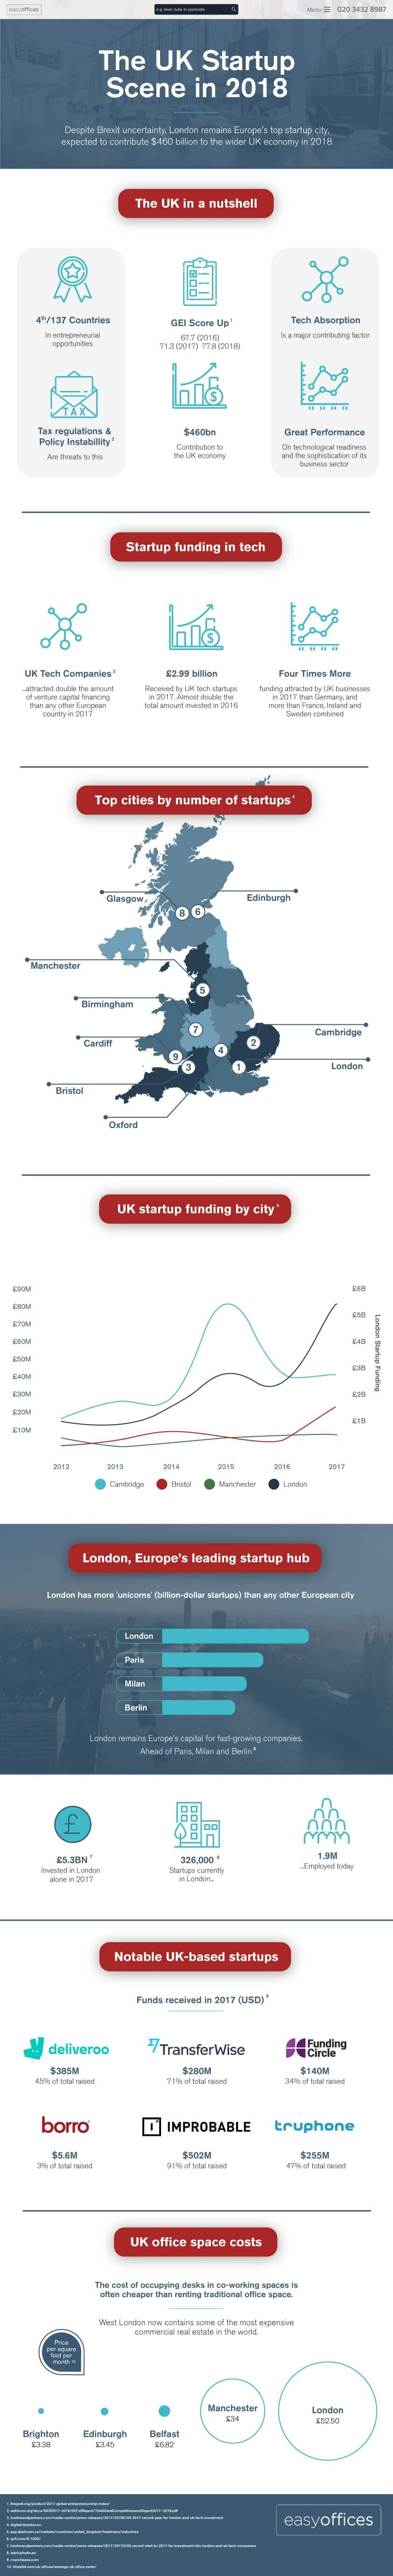 Easy Offices UK Startup Investigation Infographic